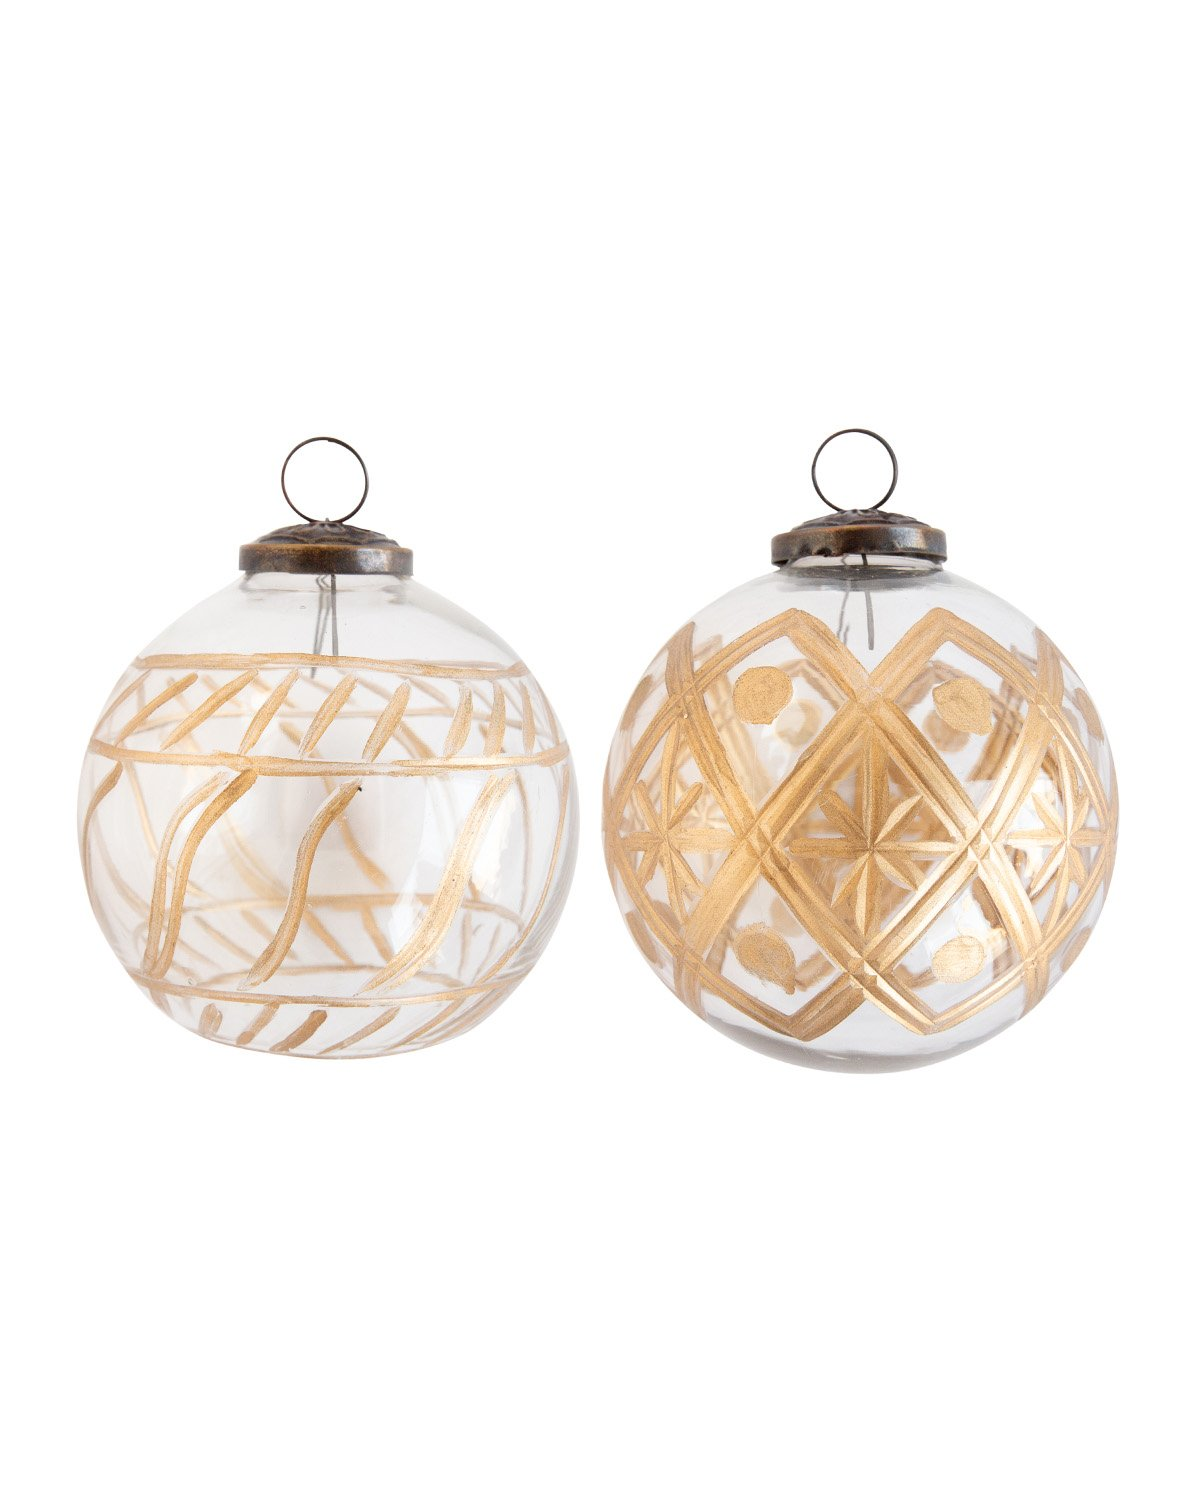 Etched_Mercury_Ball_Ornaments_2.jpg